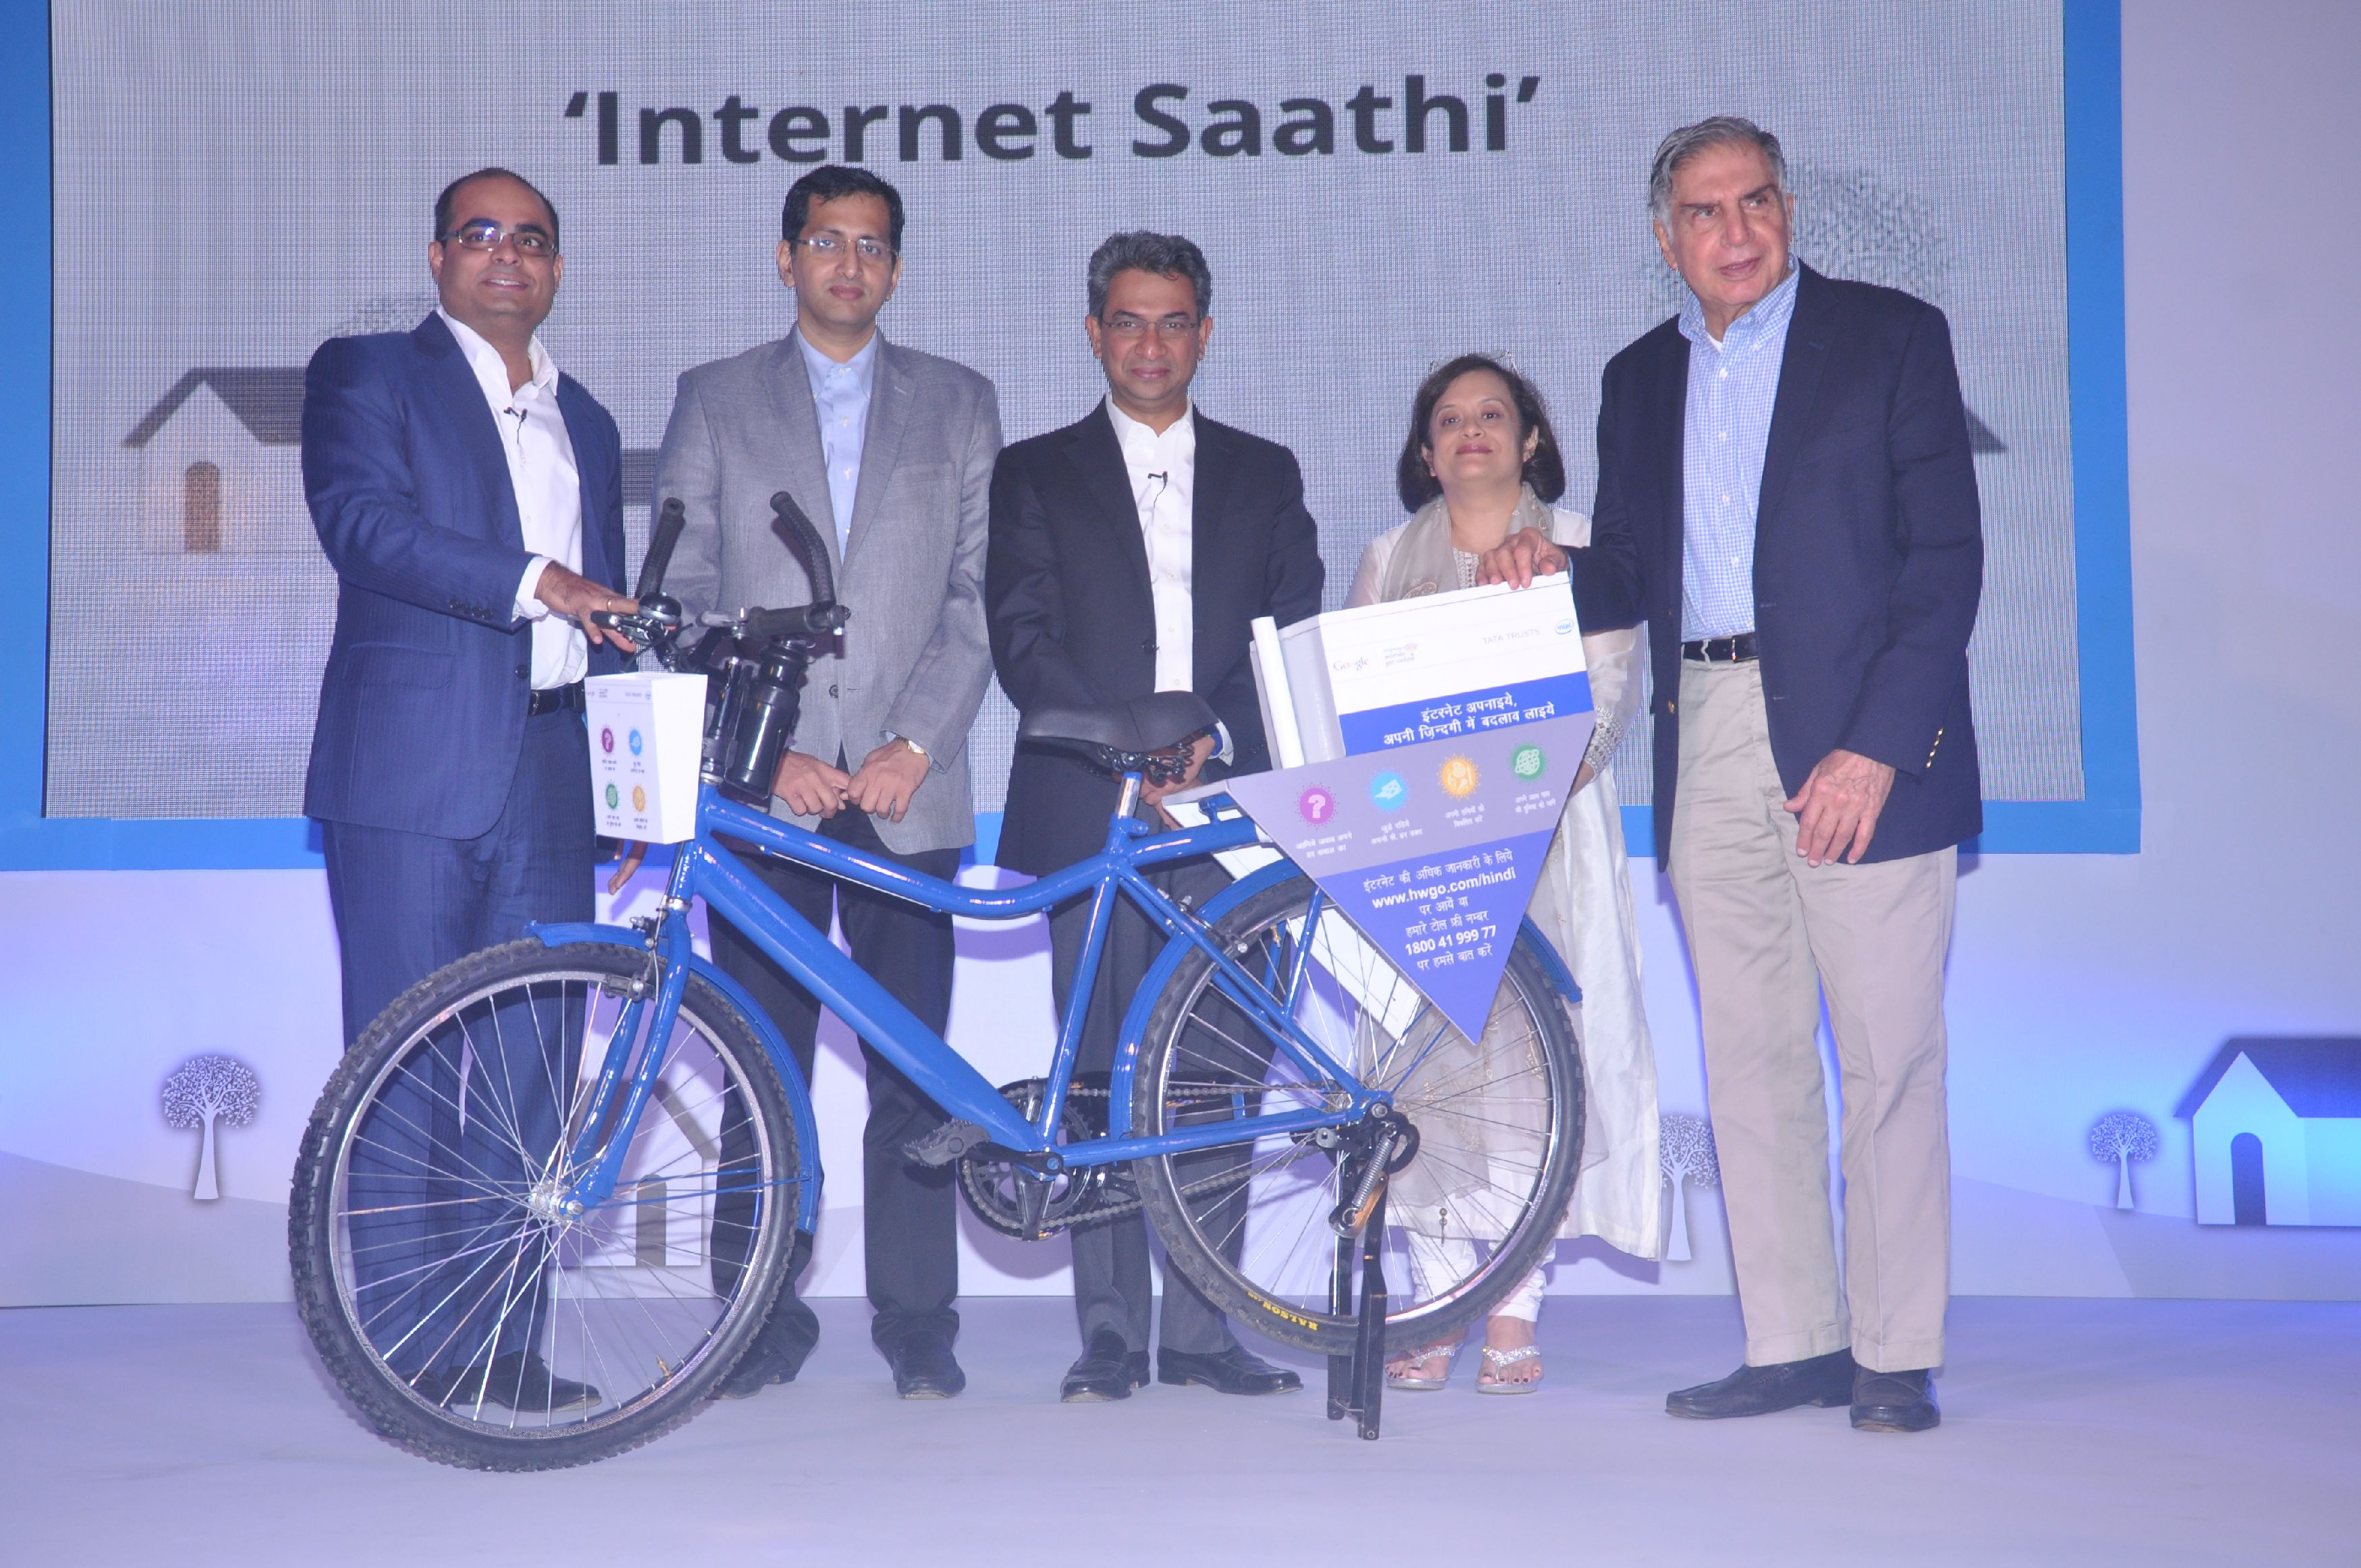 Google, Tata Trusts launch 'Internet Carts' for rural women in India